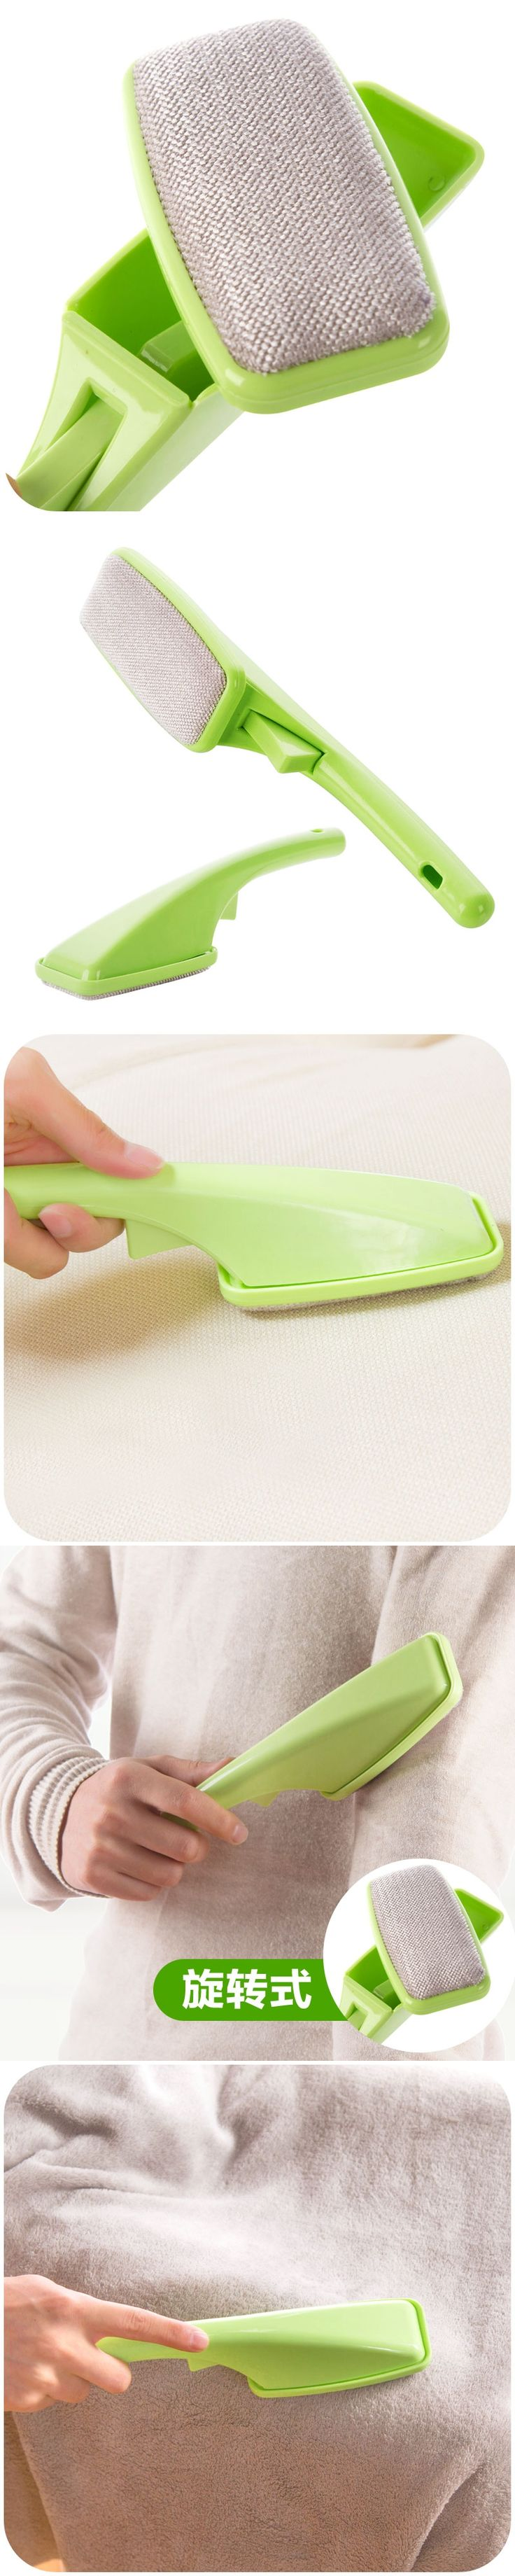 Rotatable electrostatic bristles on dry wash clothes, clothes dusting brush hair removal device